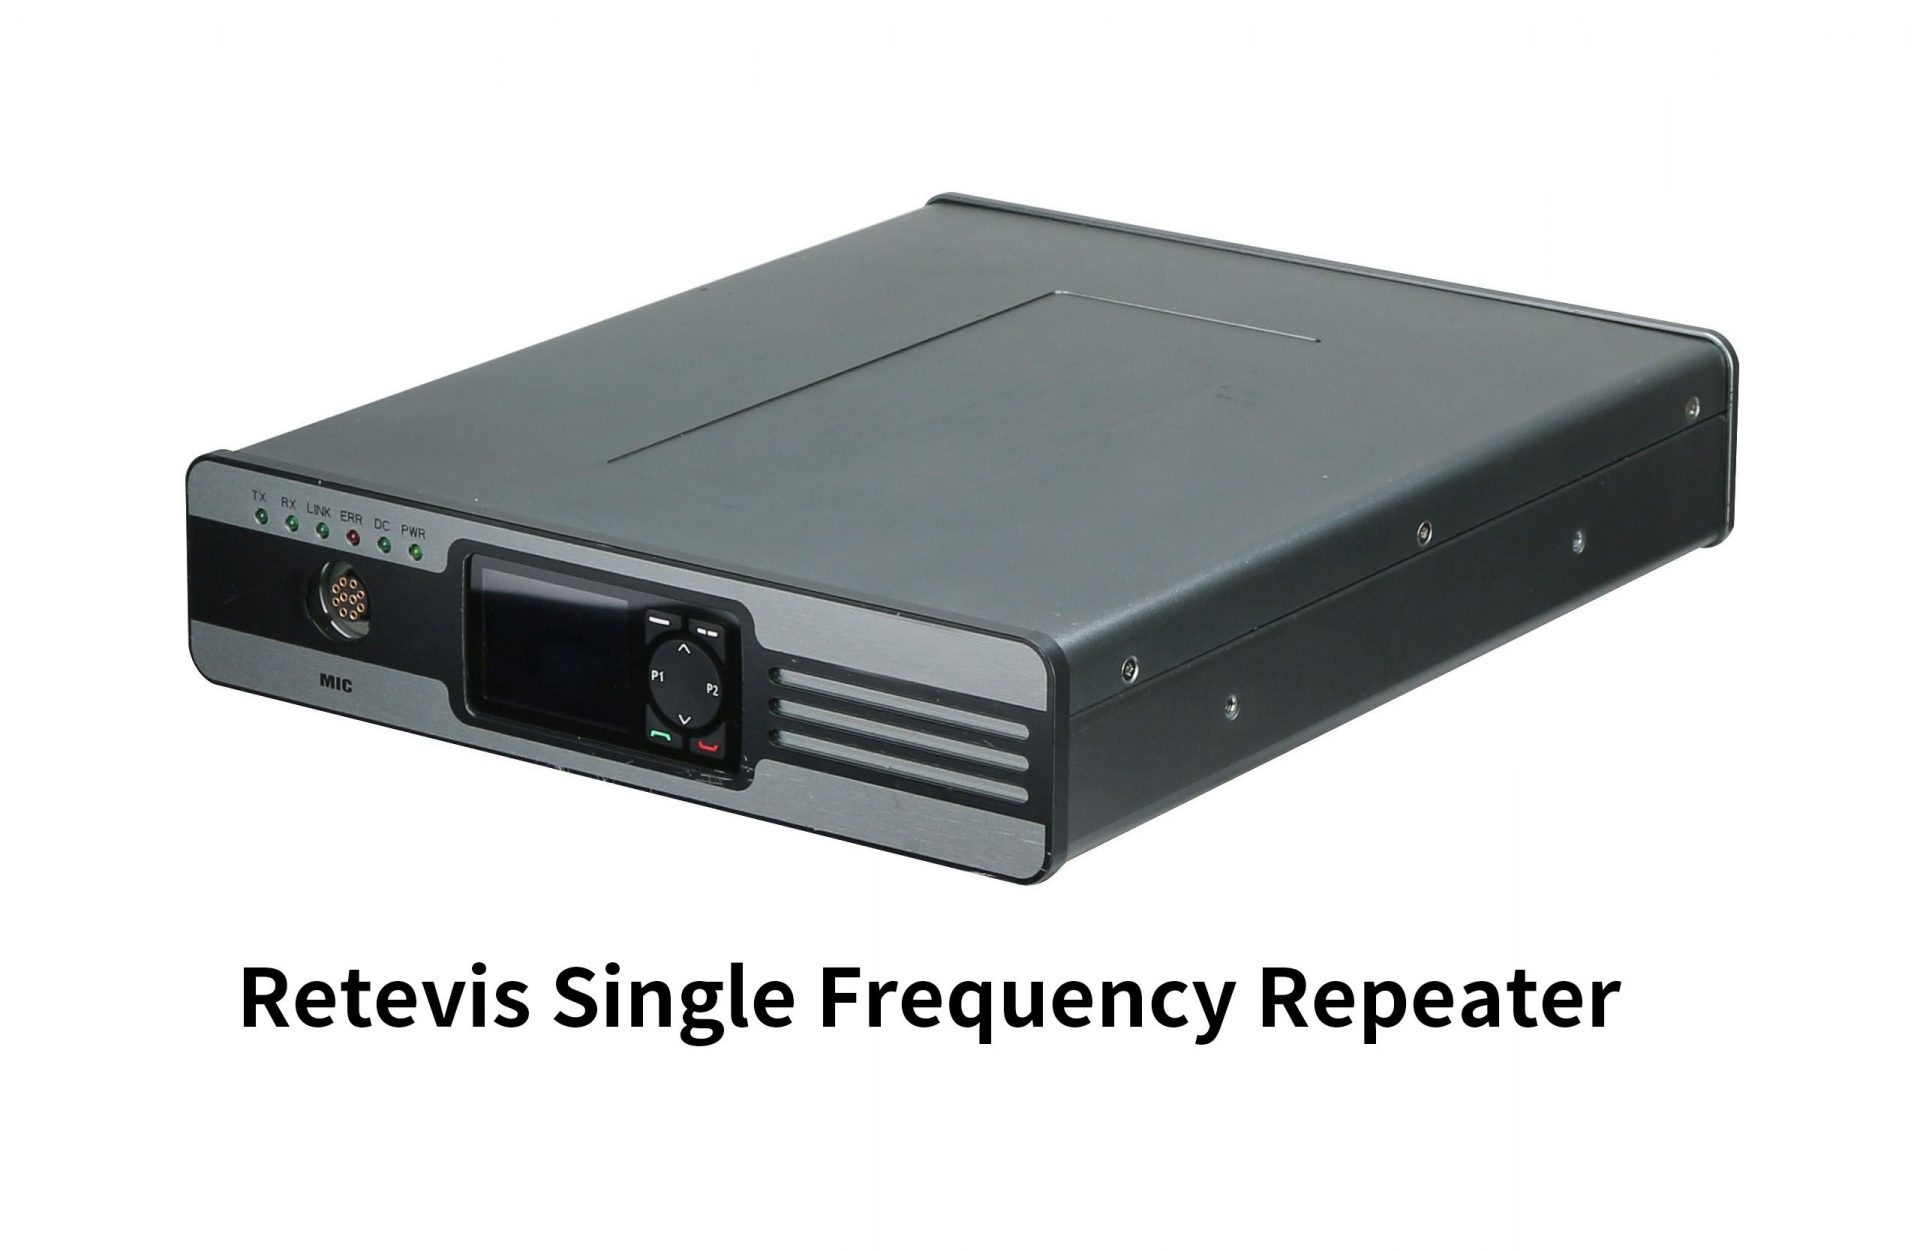 Retevis Single Frequency Repeater